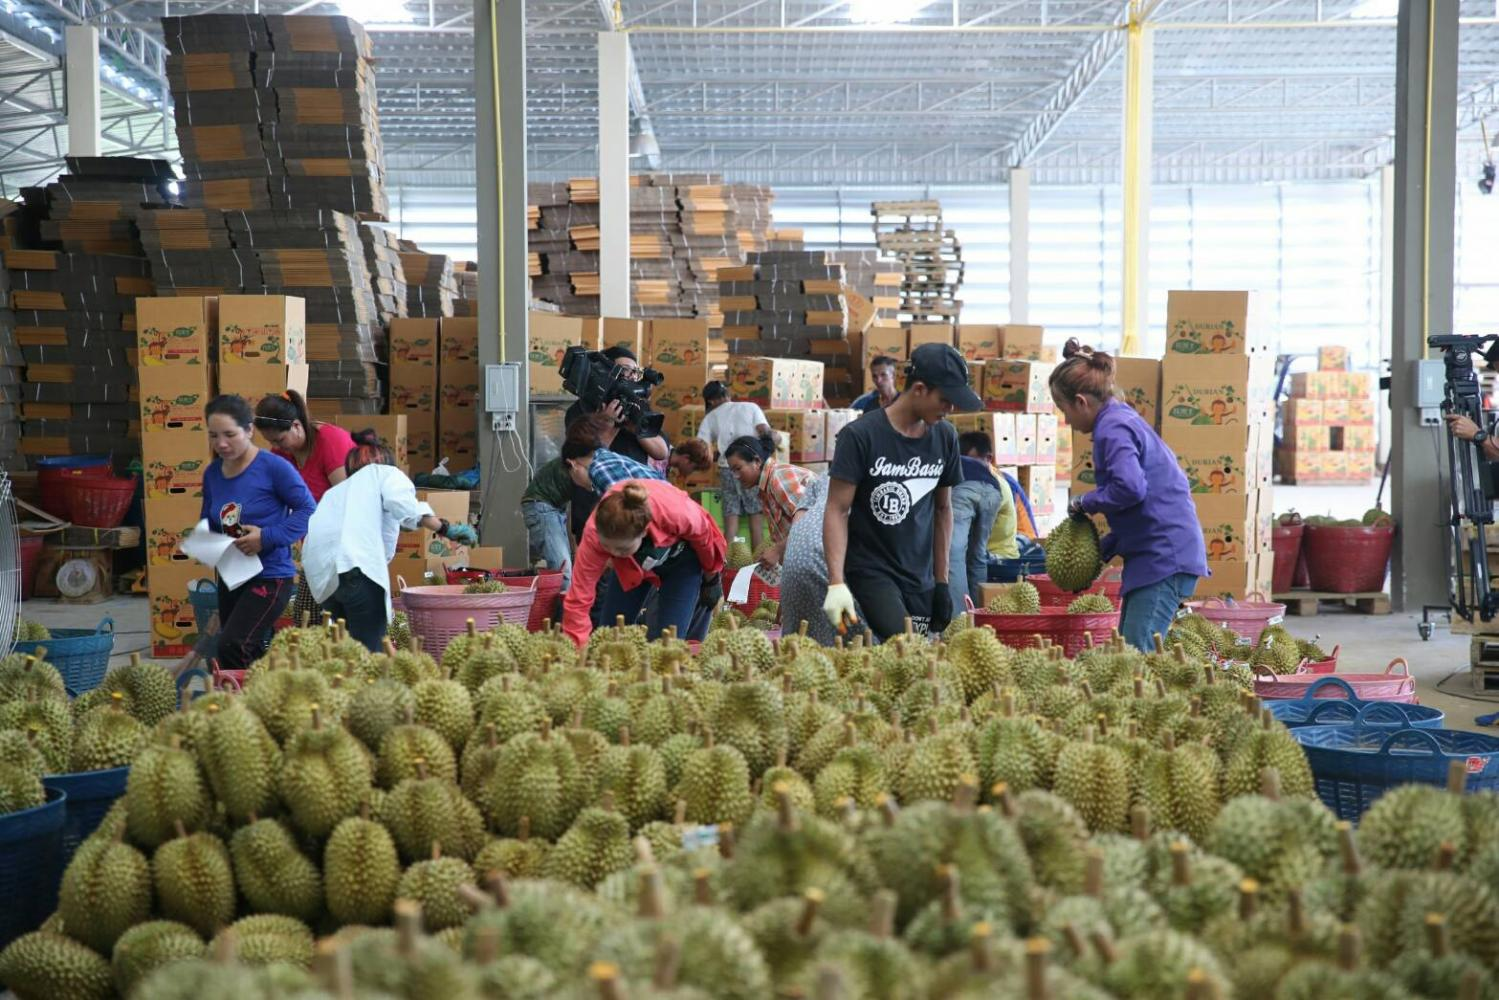 Workers pack durian into boxes for export. Thai exports expanded by 16.2% to $154.99 billion during the first seven months of 2021.